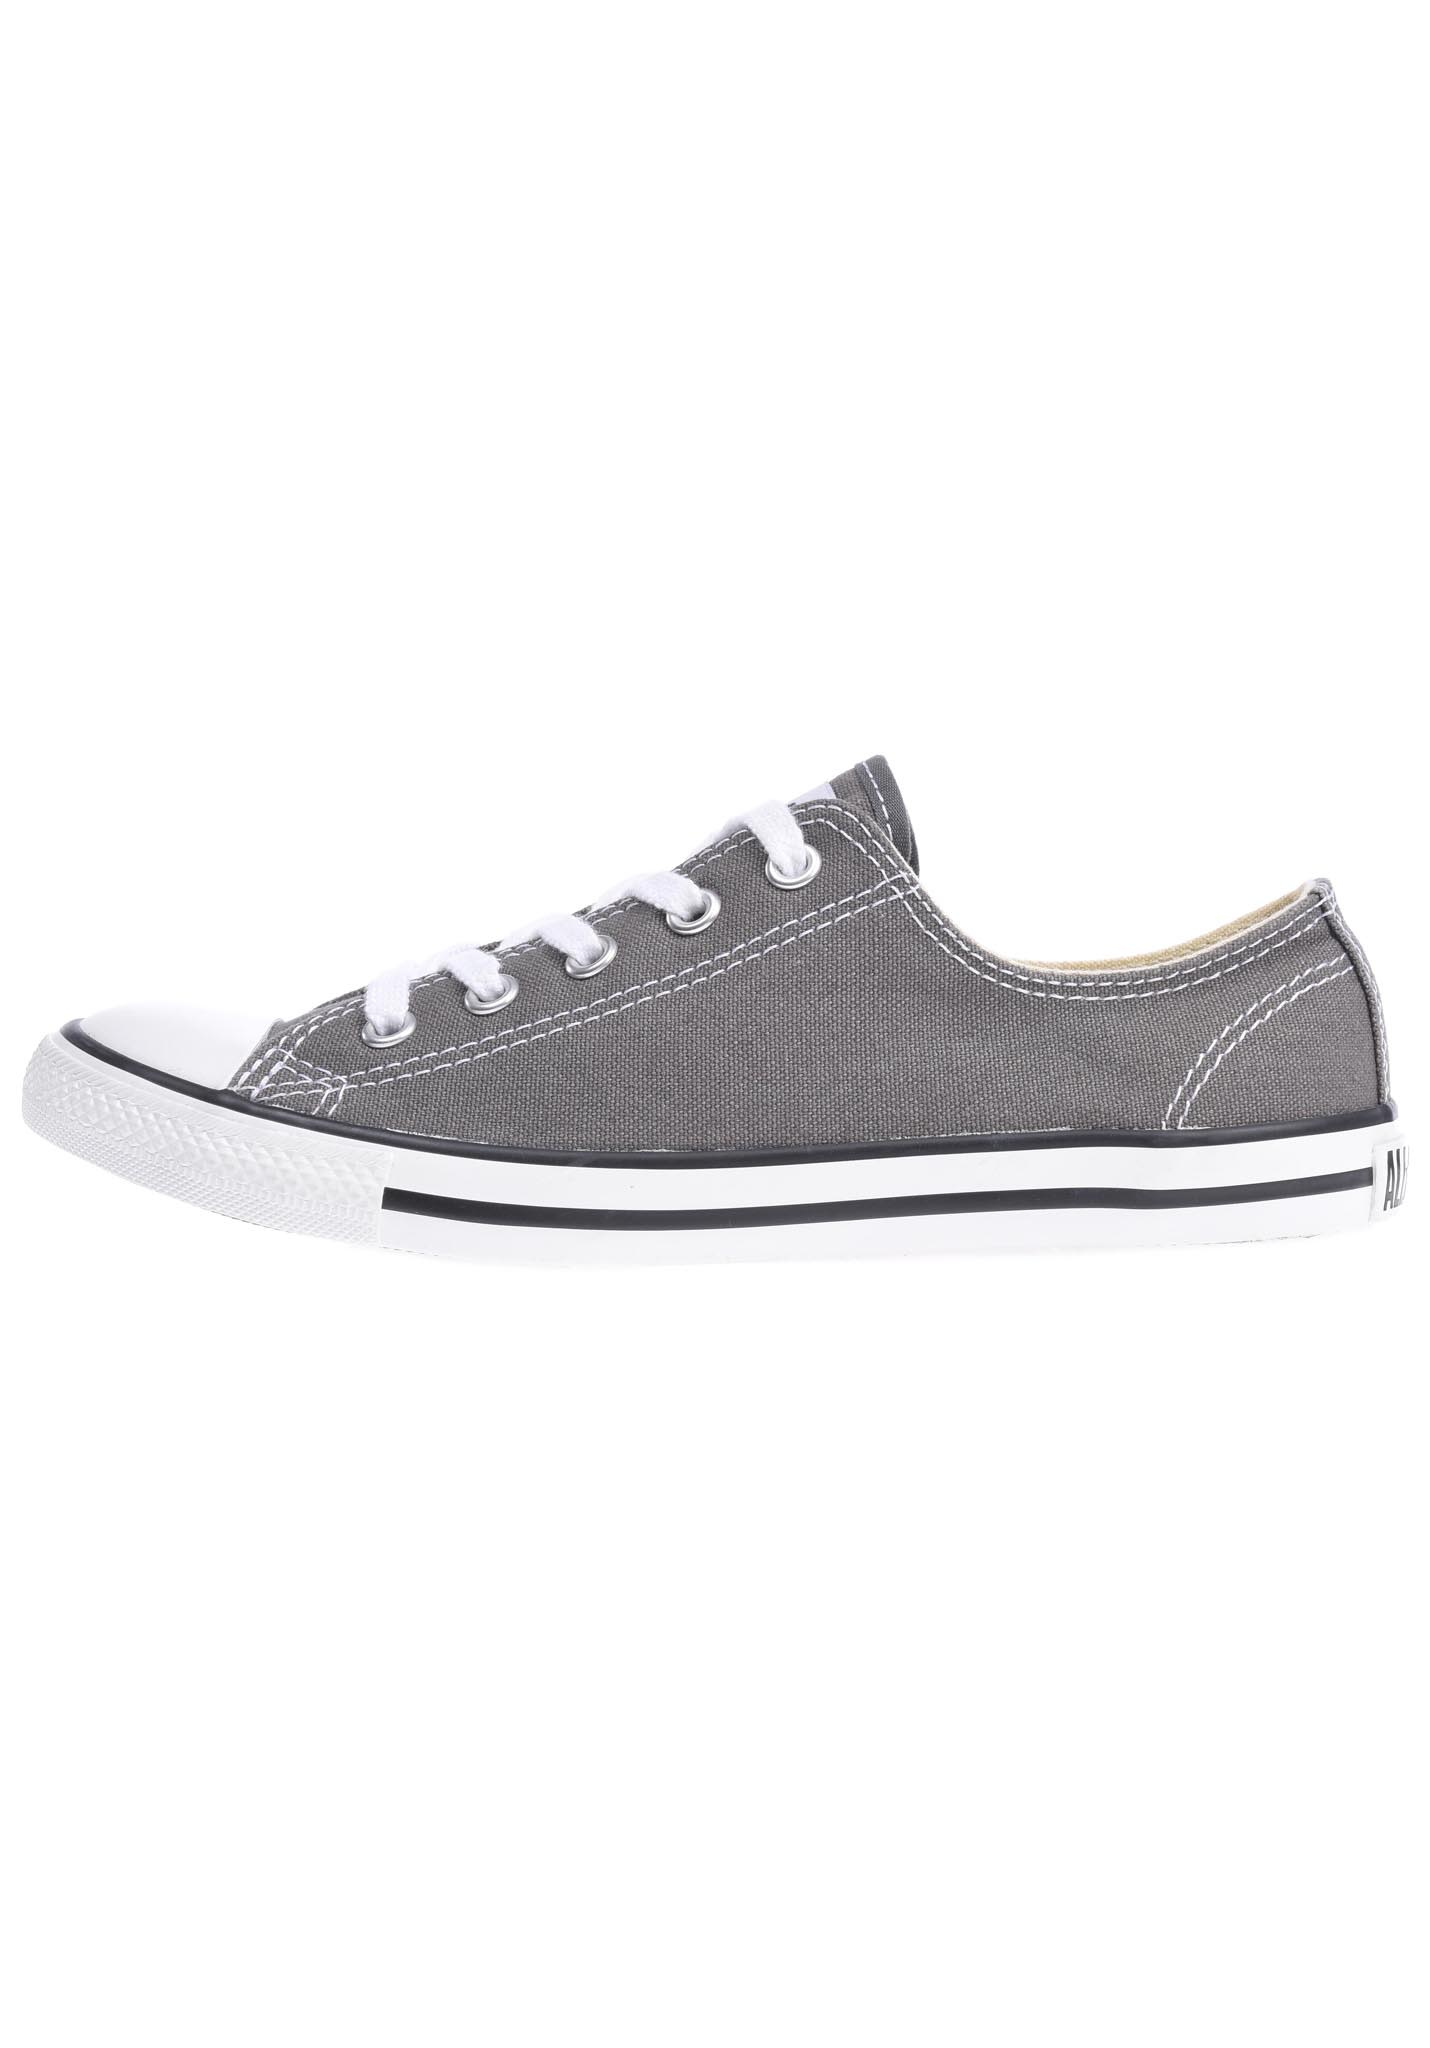 converse chuck taylor gris mujer